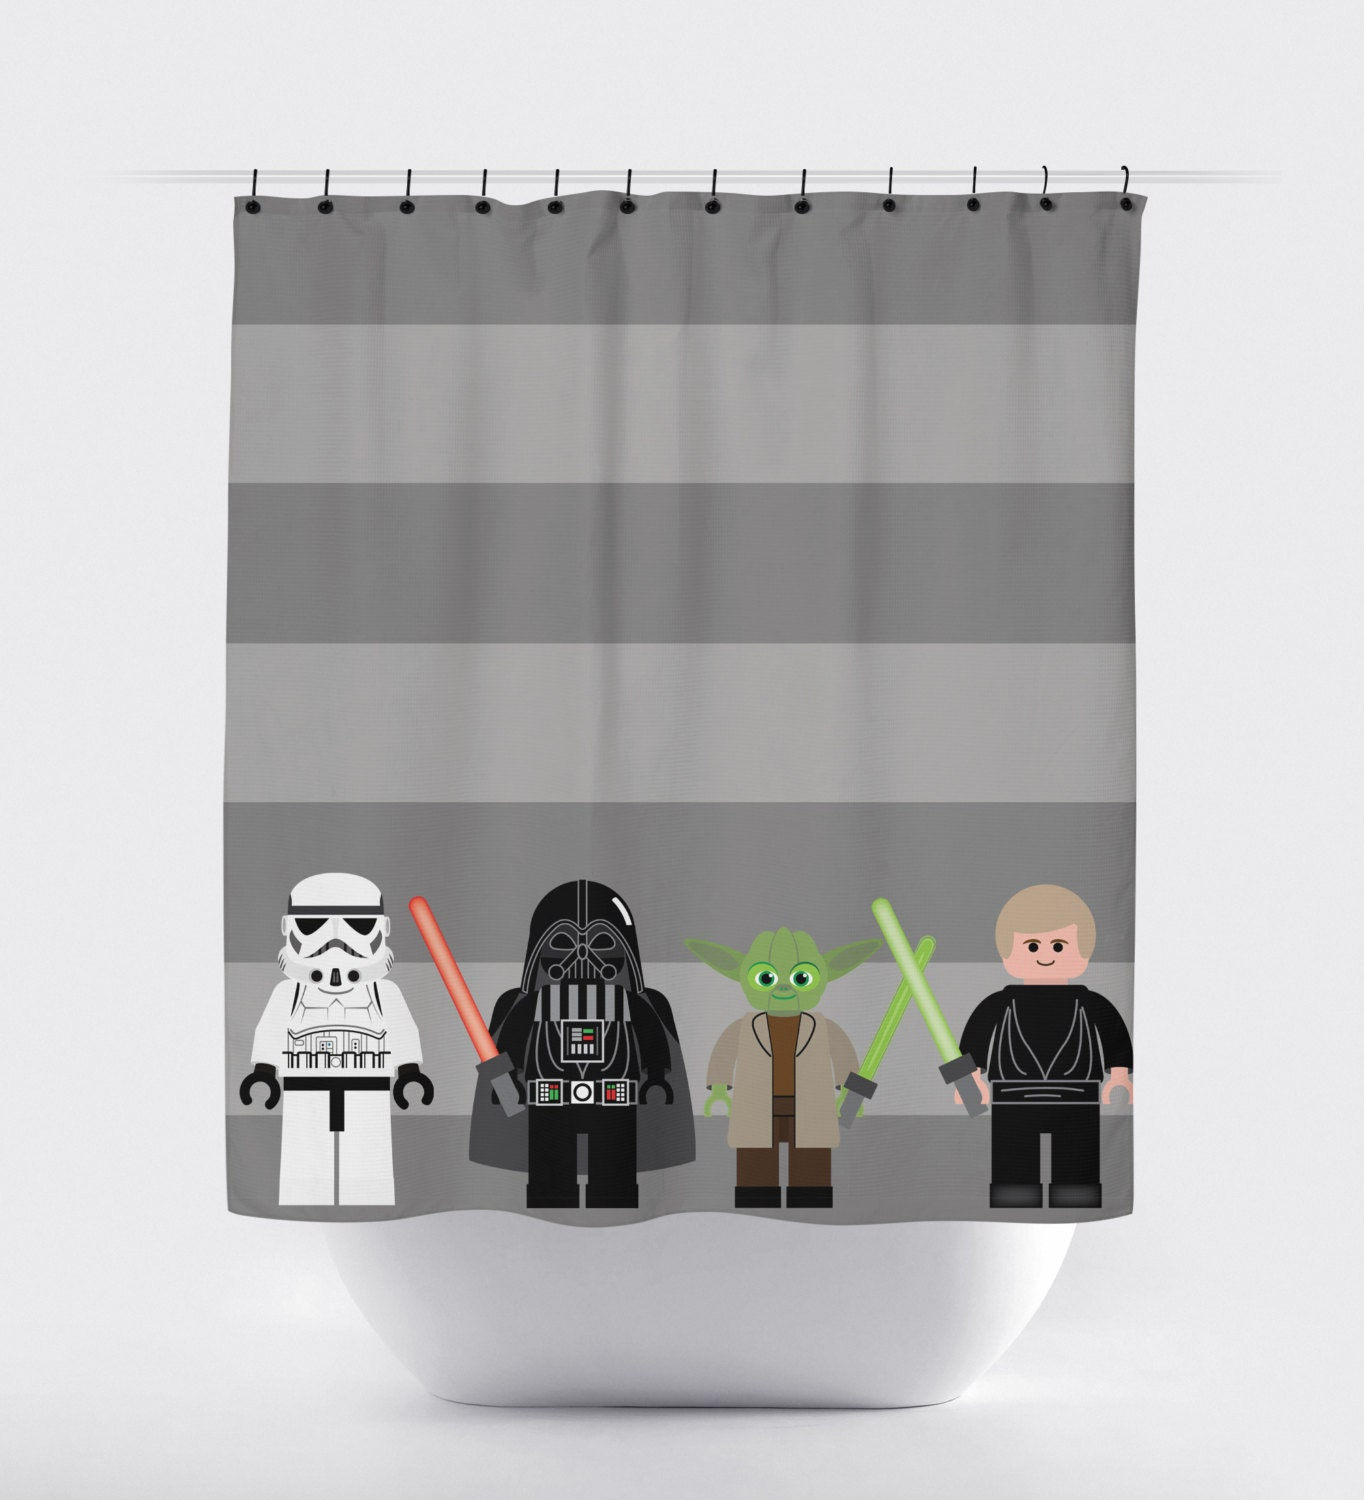 Star Wars Shower Curtain Starwars Shower Curtain Jedi Shower - Star wars bathroom decor for small bathroom ideas